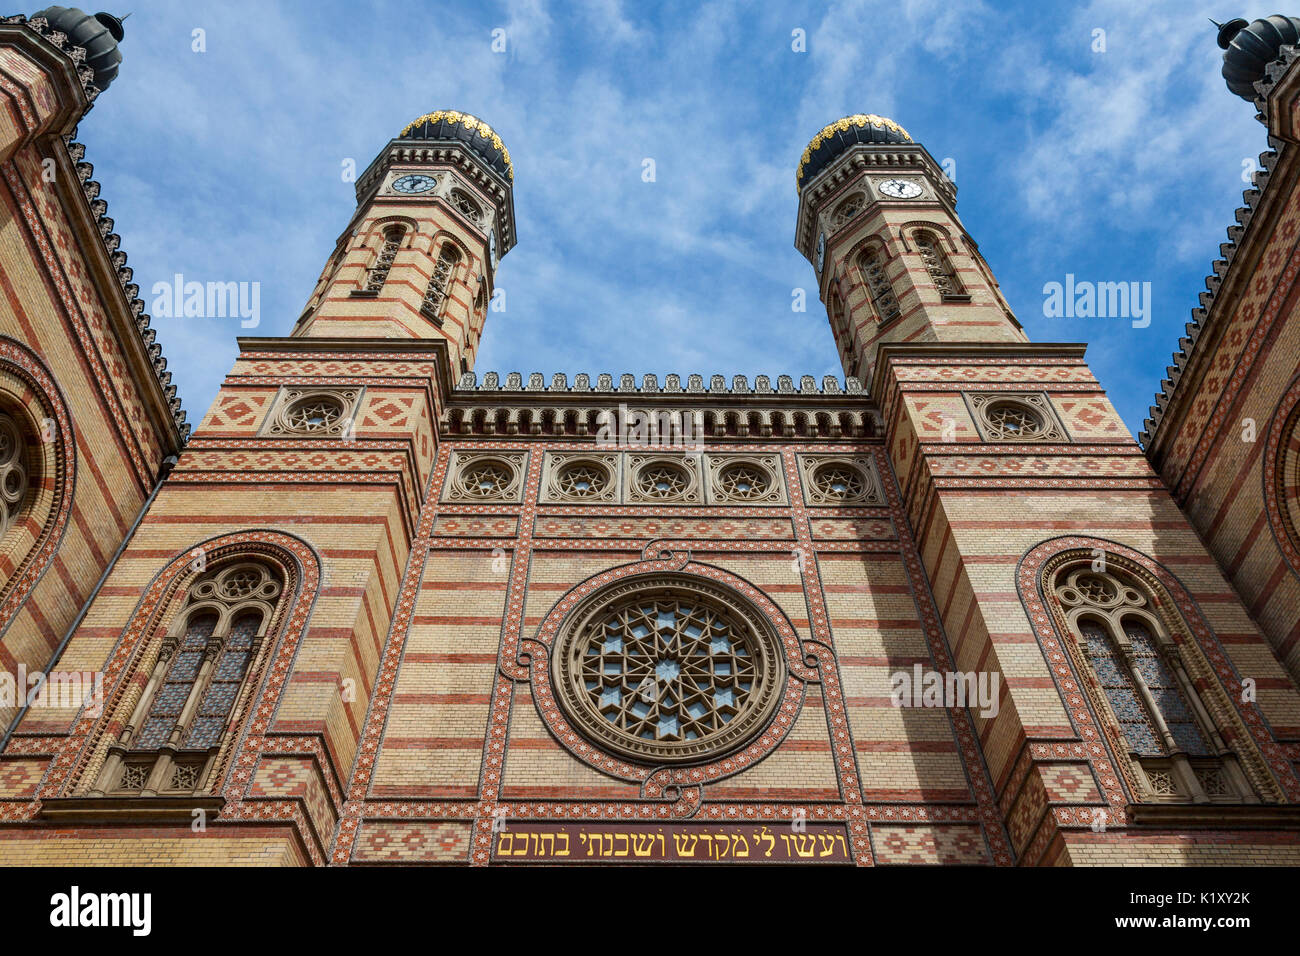 Budapest synagogue (Dohany Synagogue) main entrance taken from outside. The two iconic towers of the synagogue can be seen in the foreground. The Grea - Stock Image